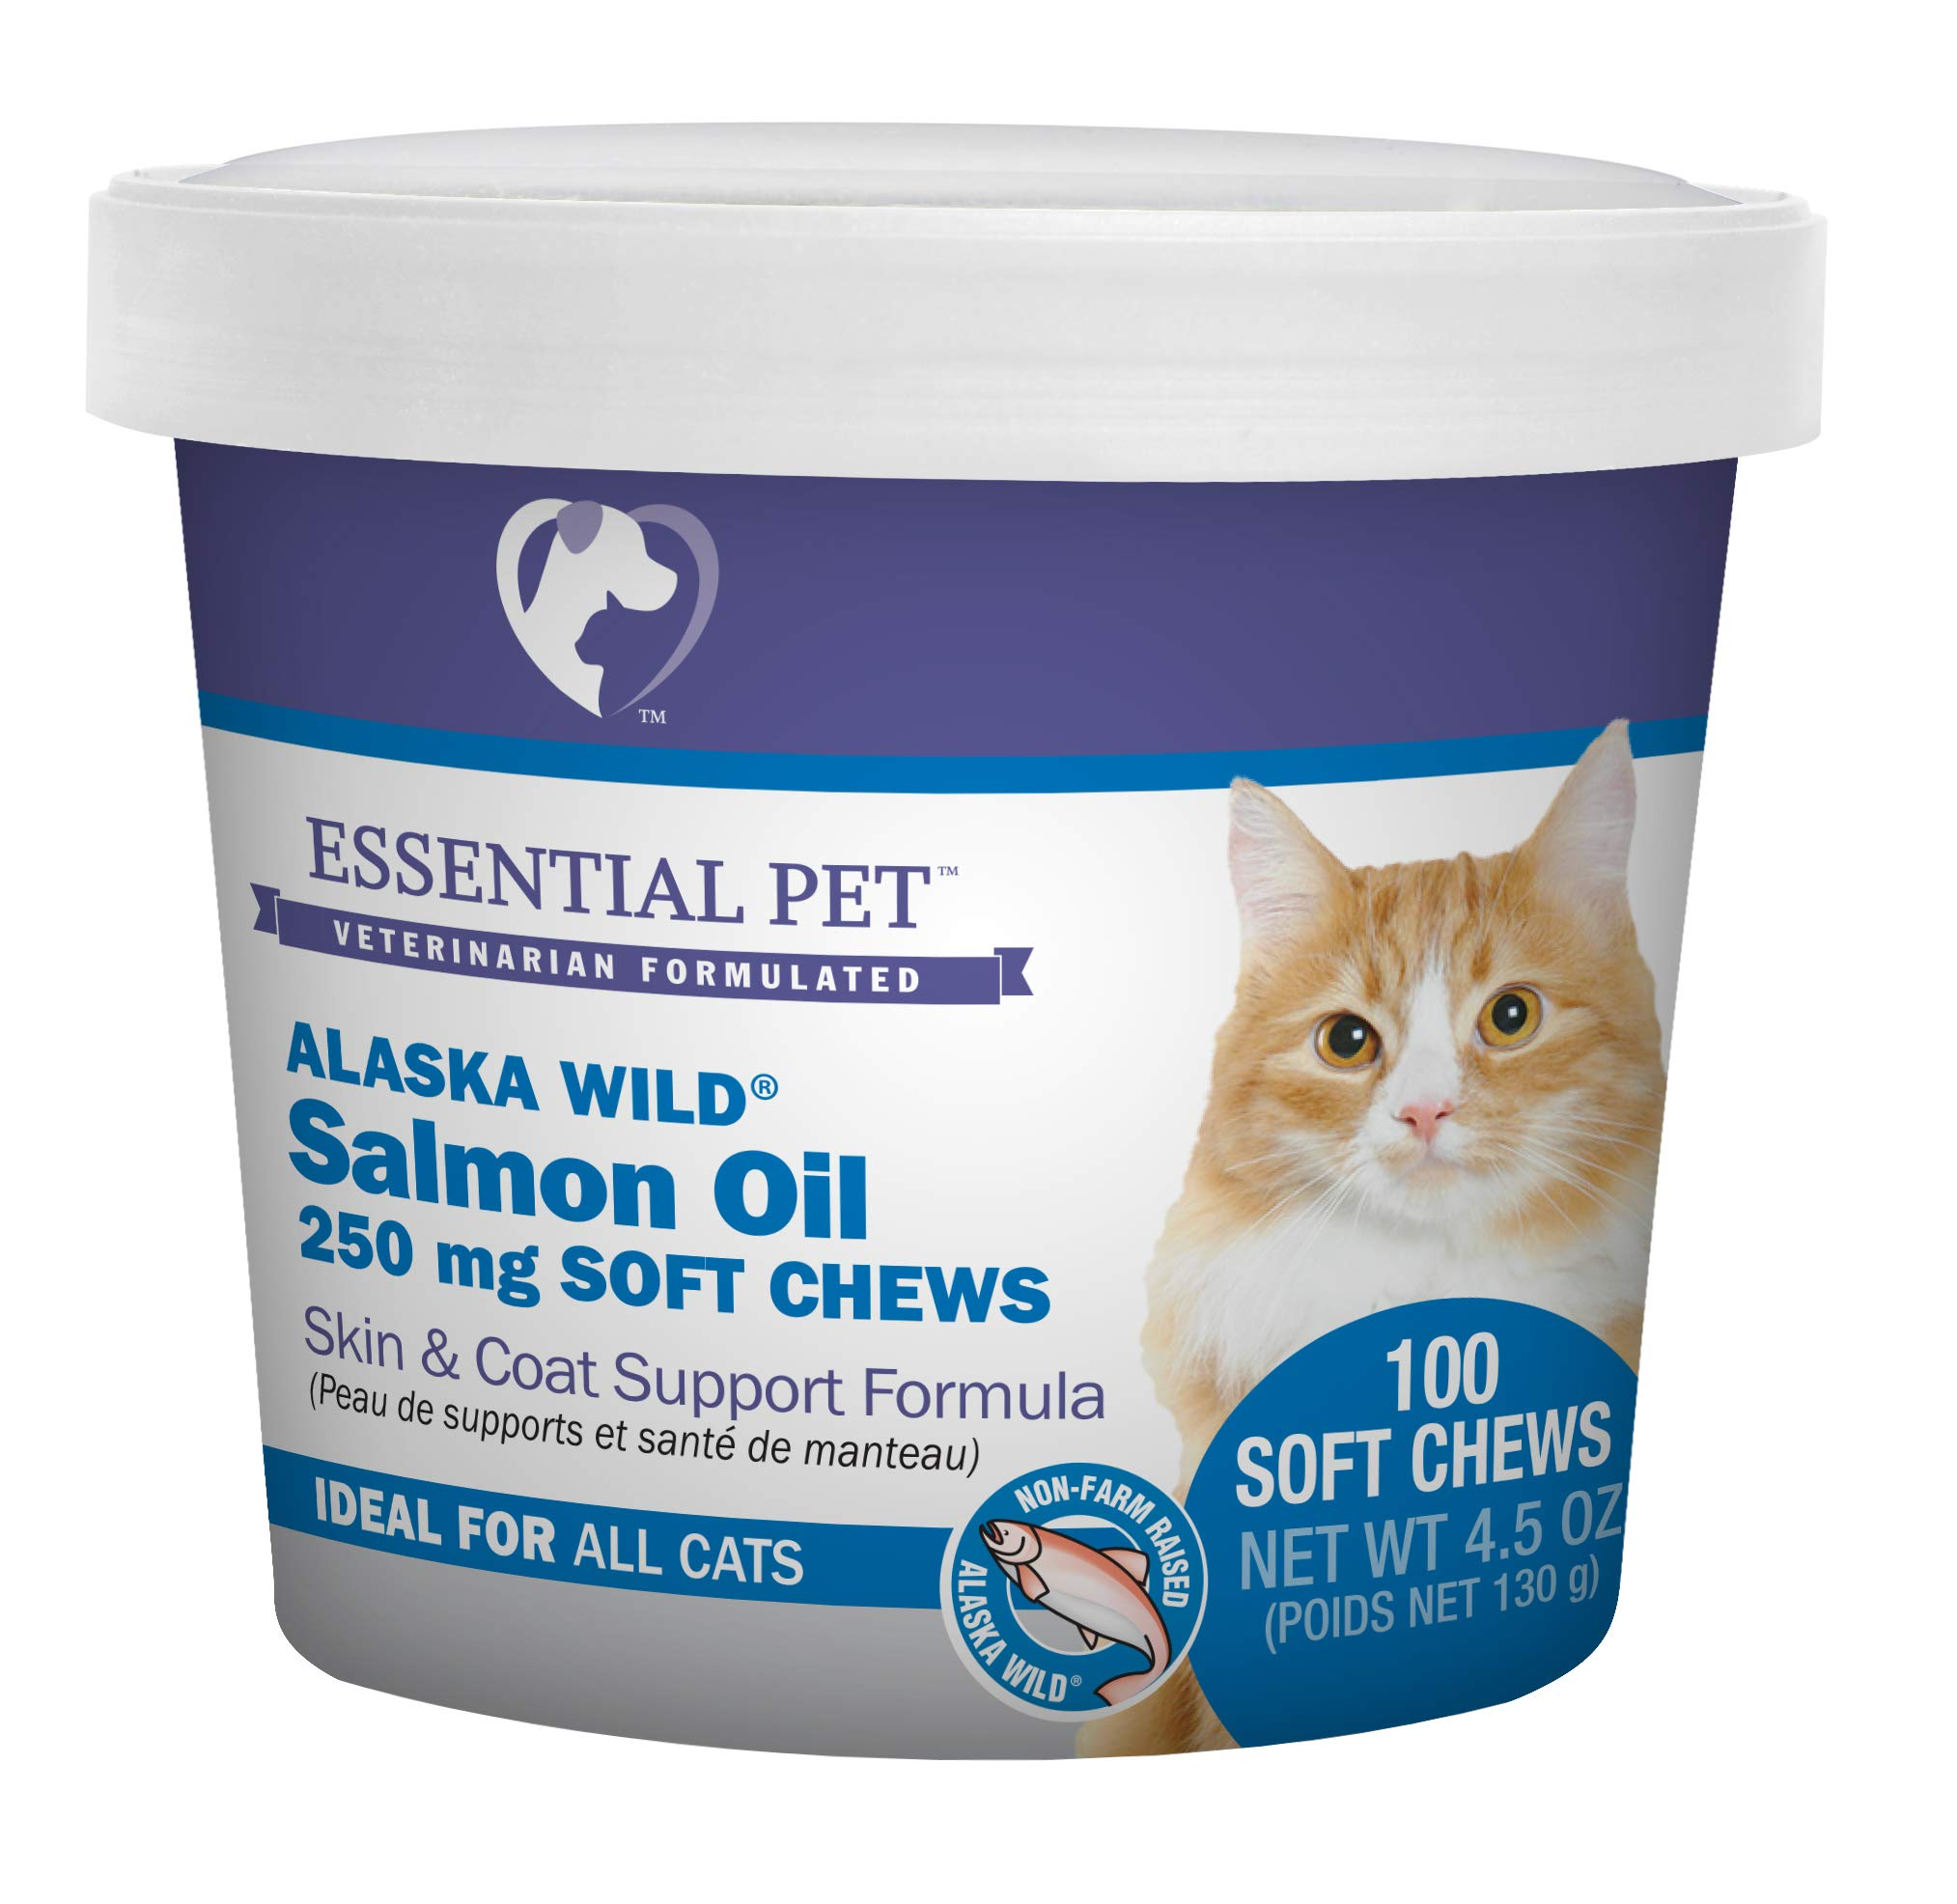 Essential Pet Products Alaska Wild Salmon Oil Soft Chews with Natural Omega-3 Fatty Acids for Cats by Essential Pet Products